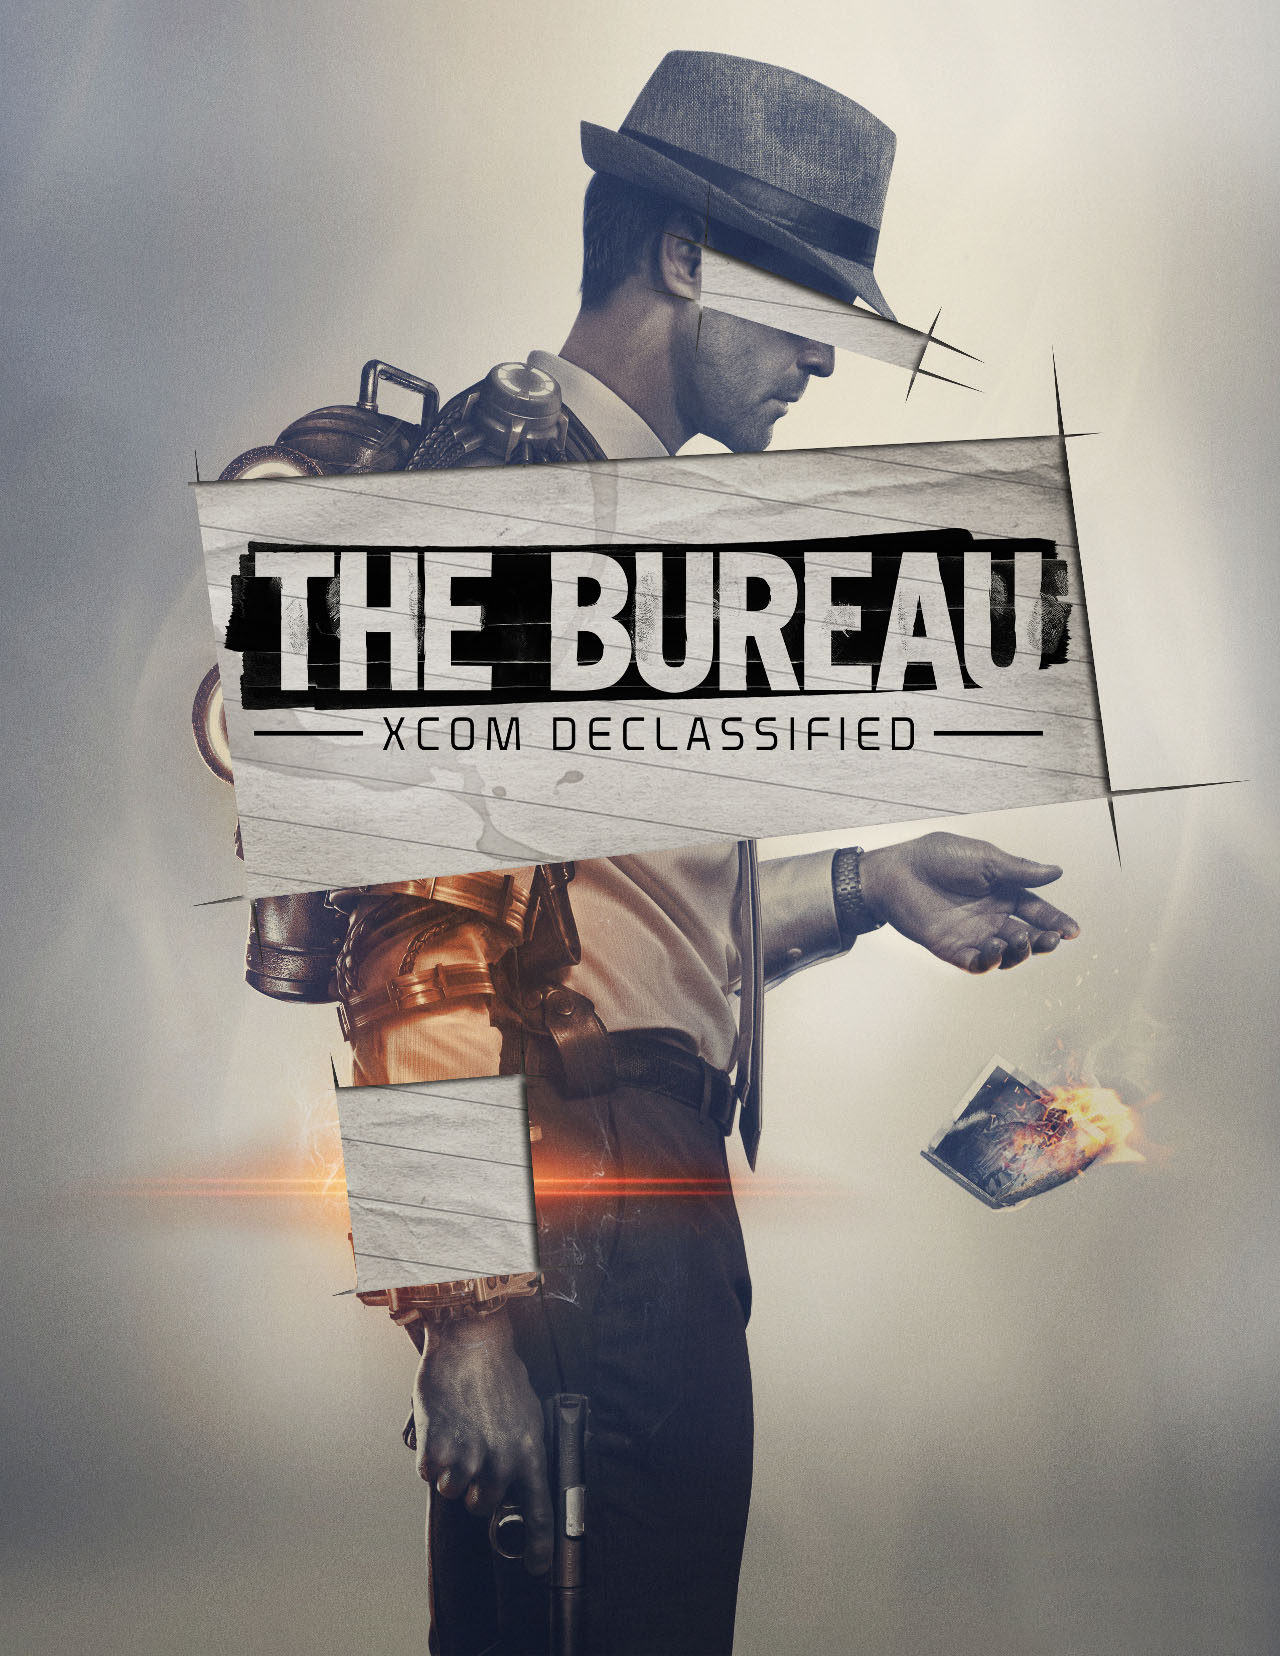 لعبة The Bureau XCOM Declassified ريباك فريق RG Mechanics